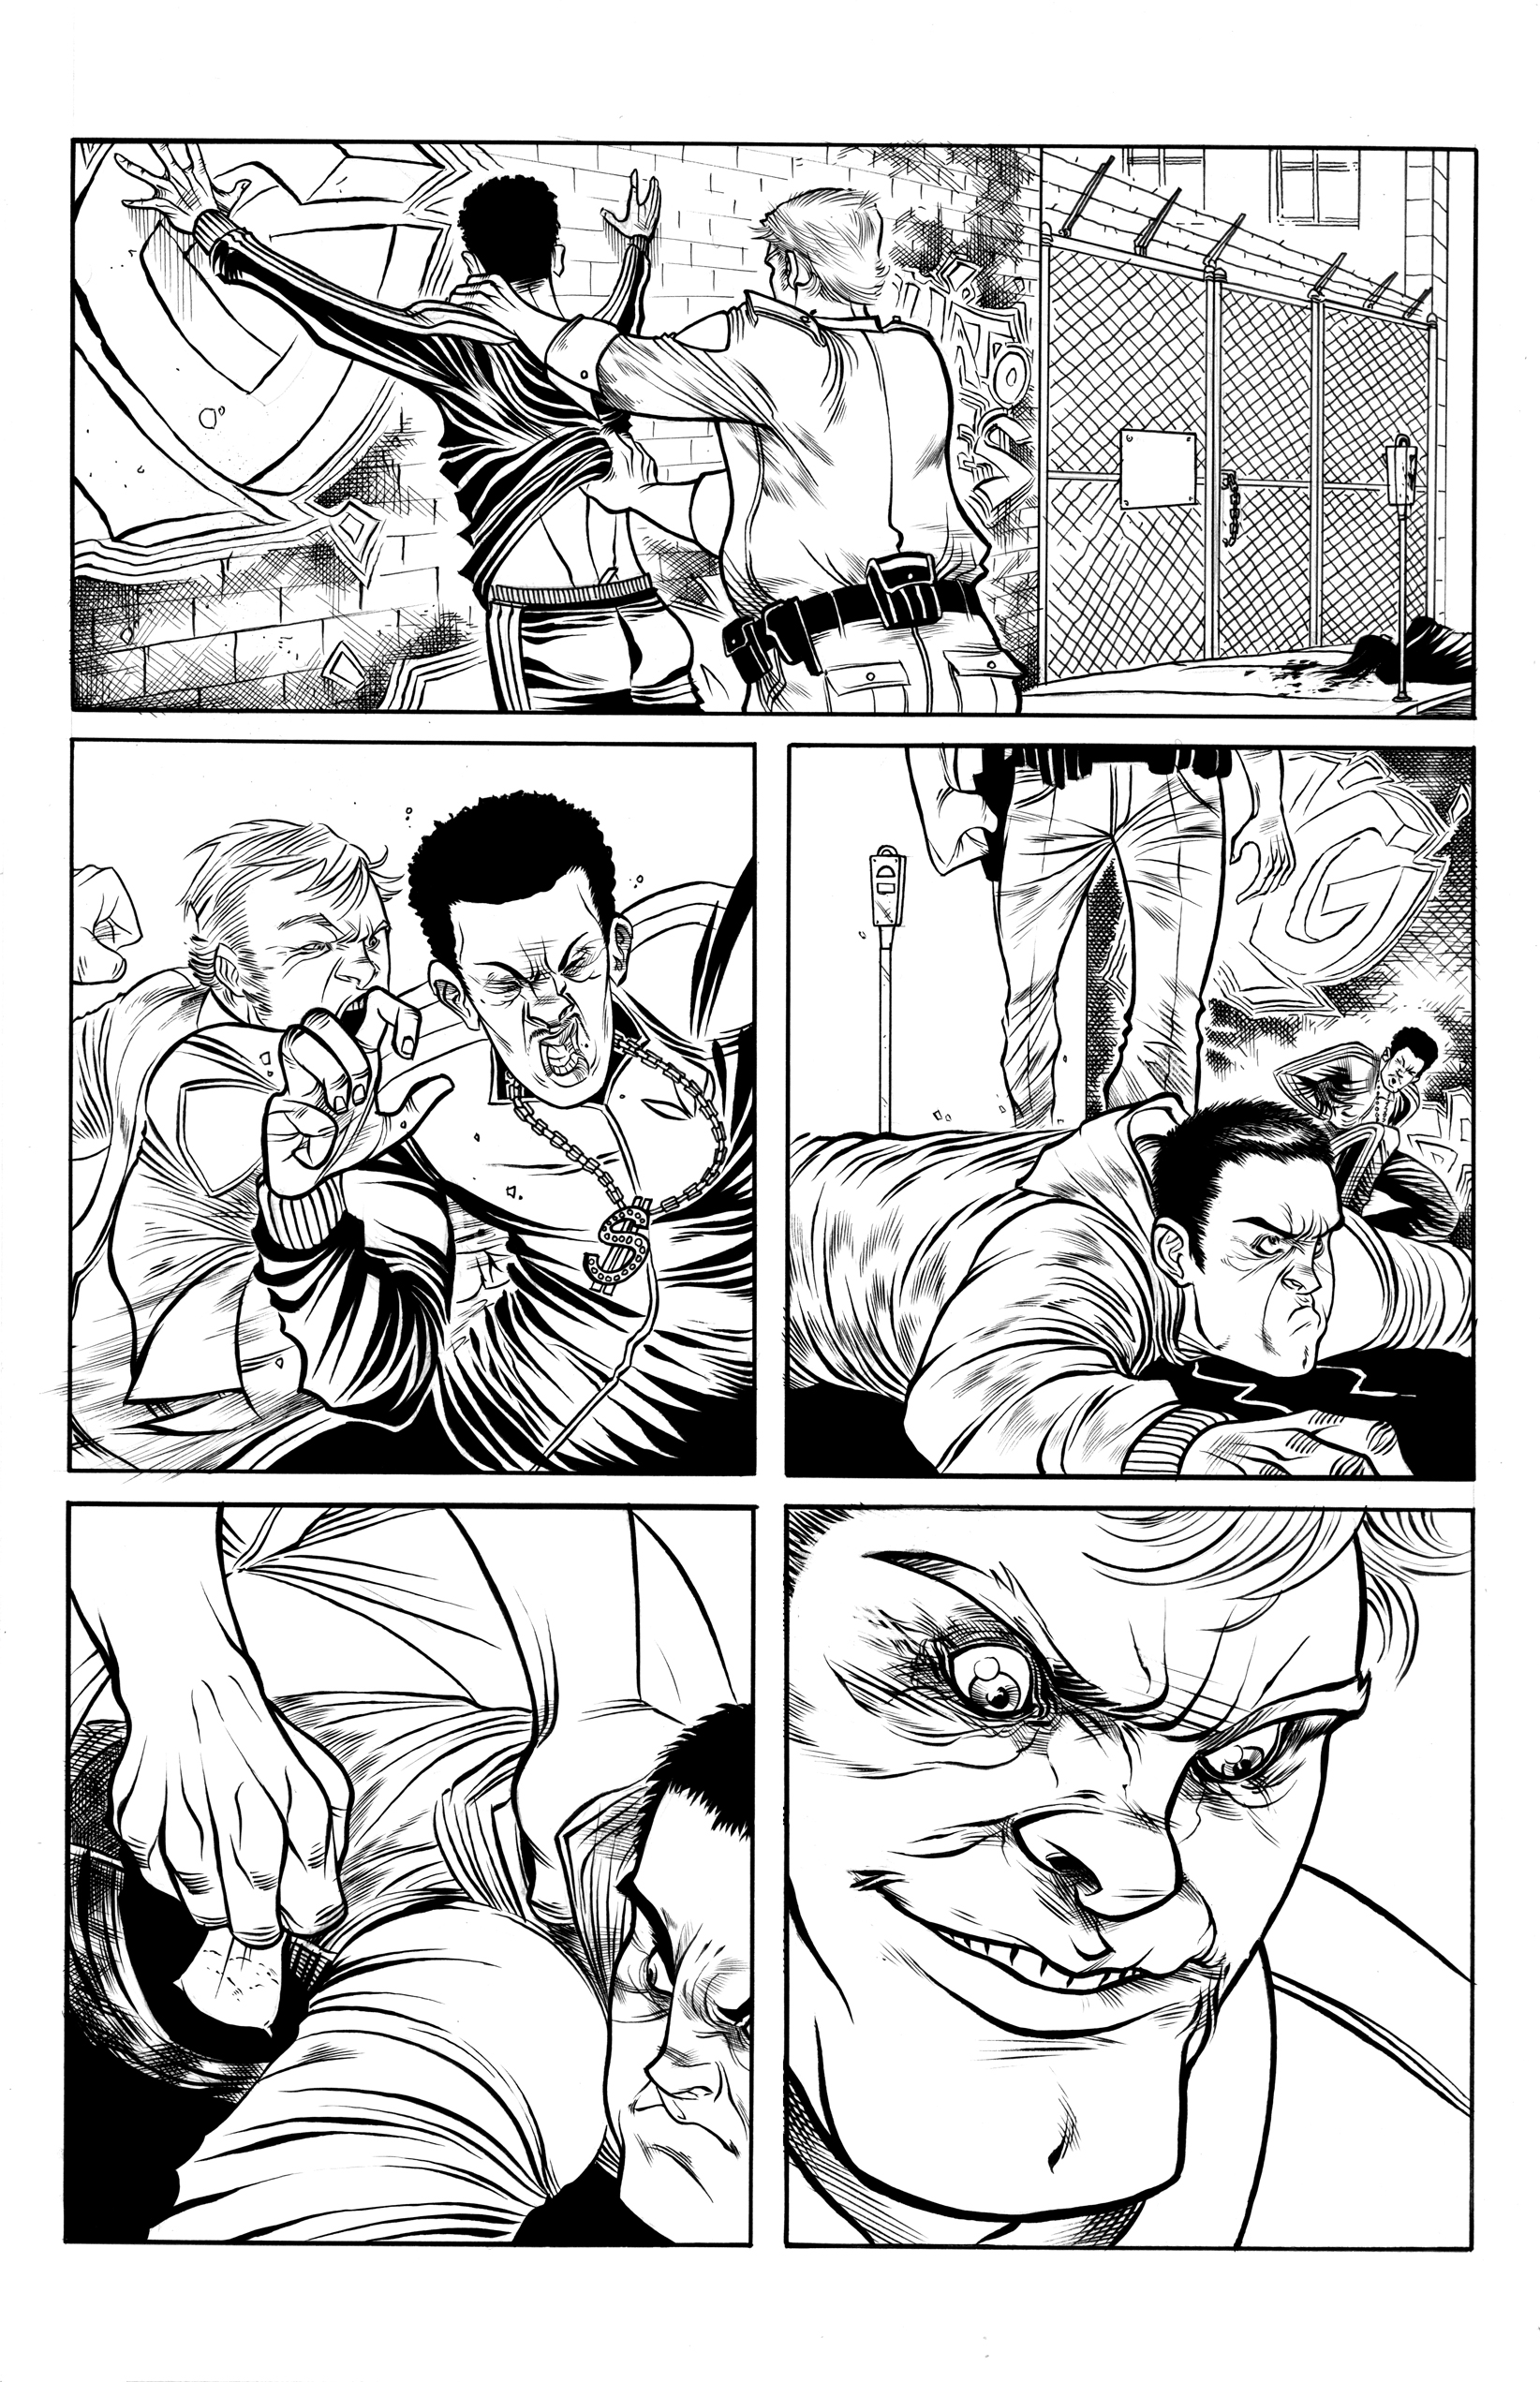 Inks: Tradd Moore / Copyright: H.C.M.P.